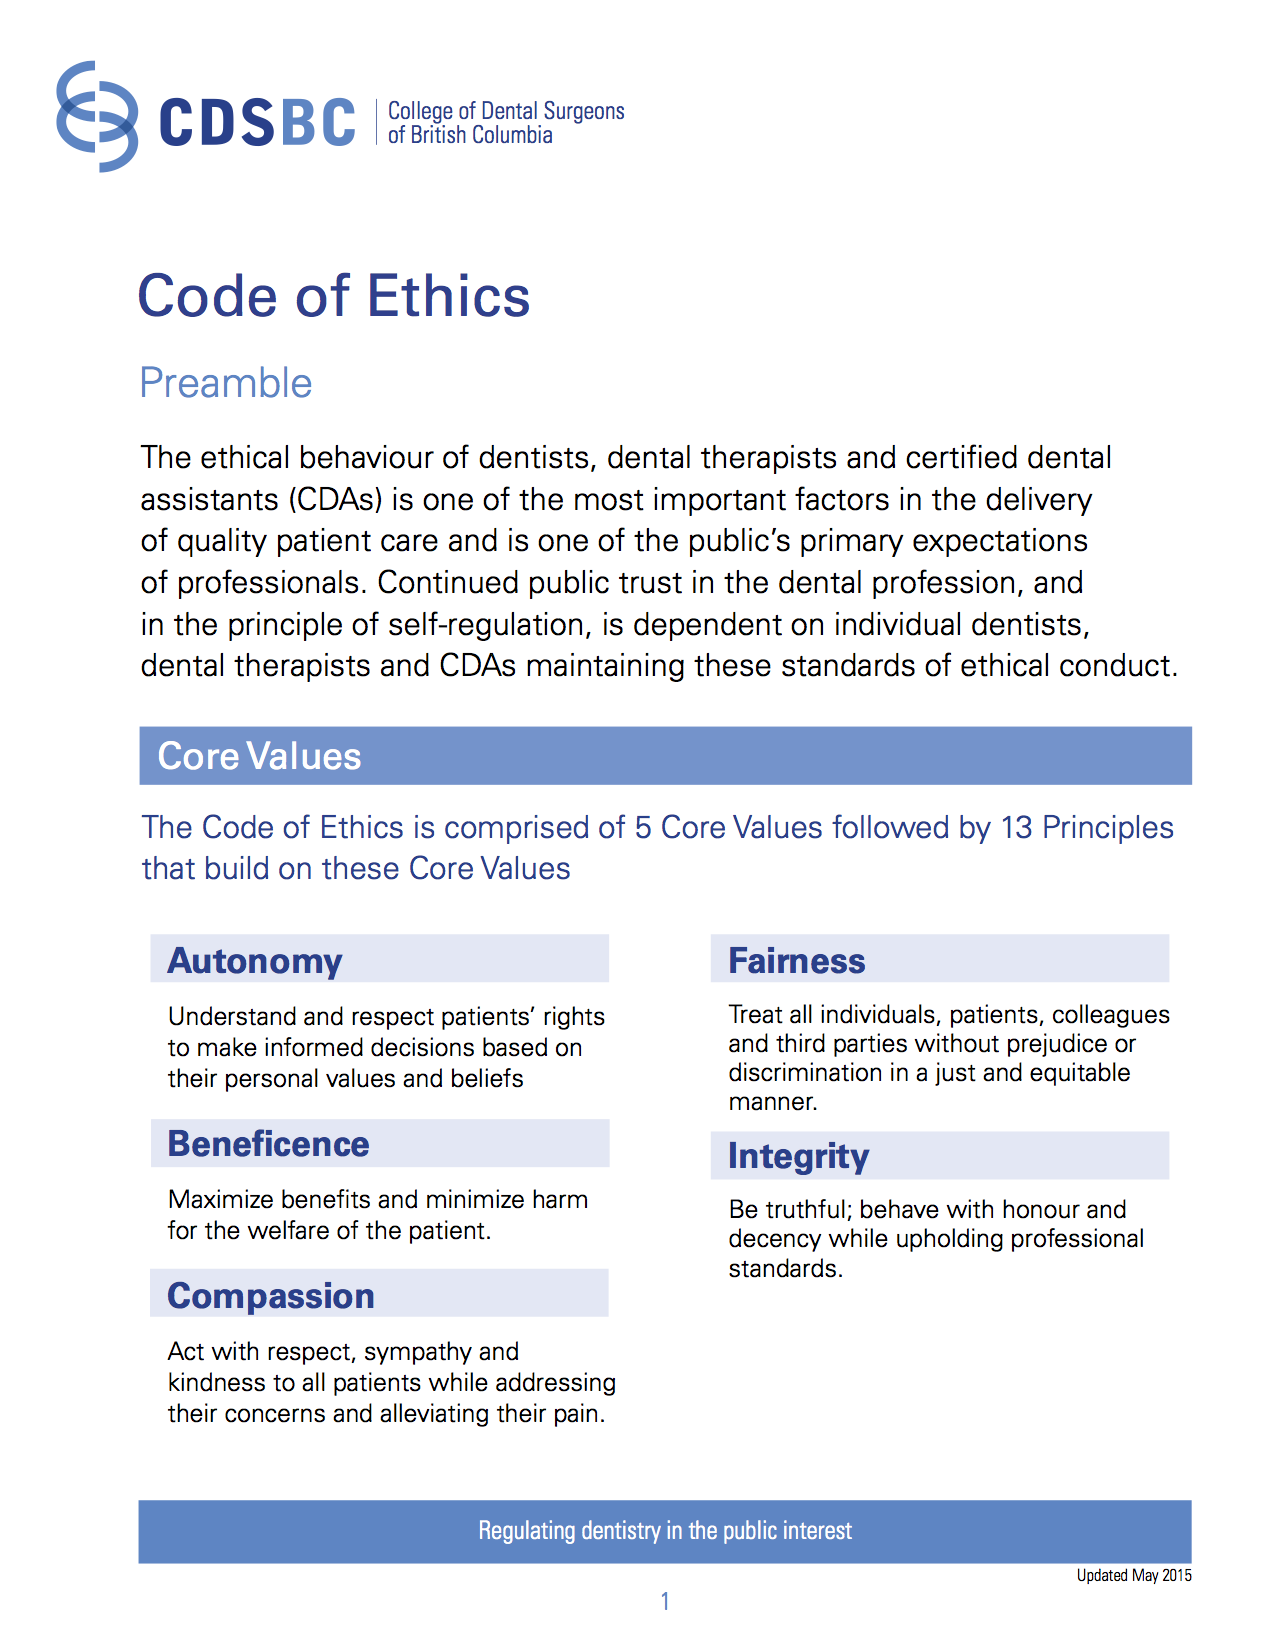 Code of ethics about discrimination for online dating sites